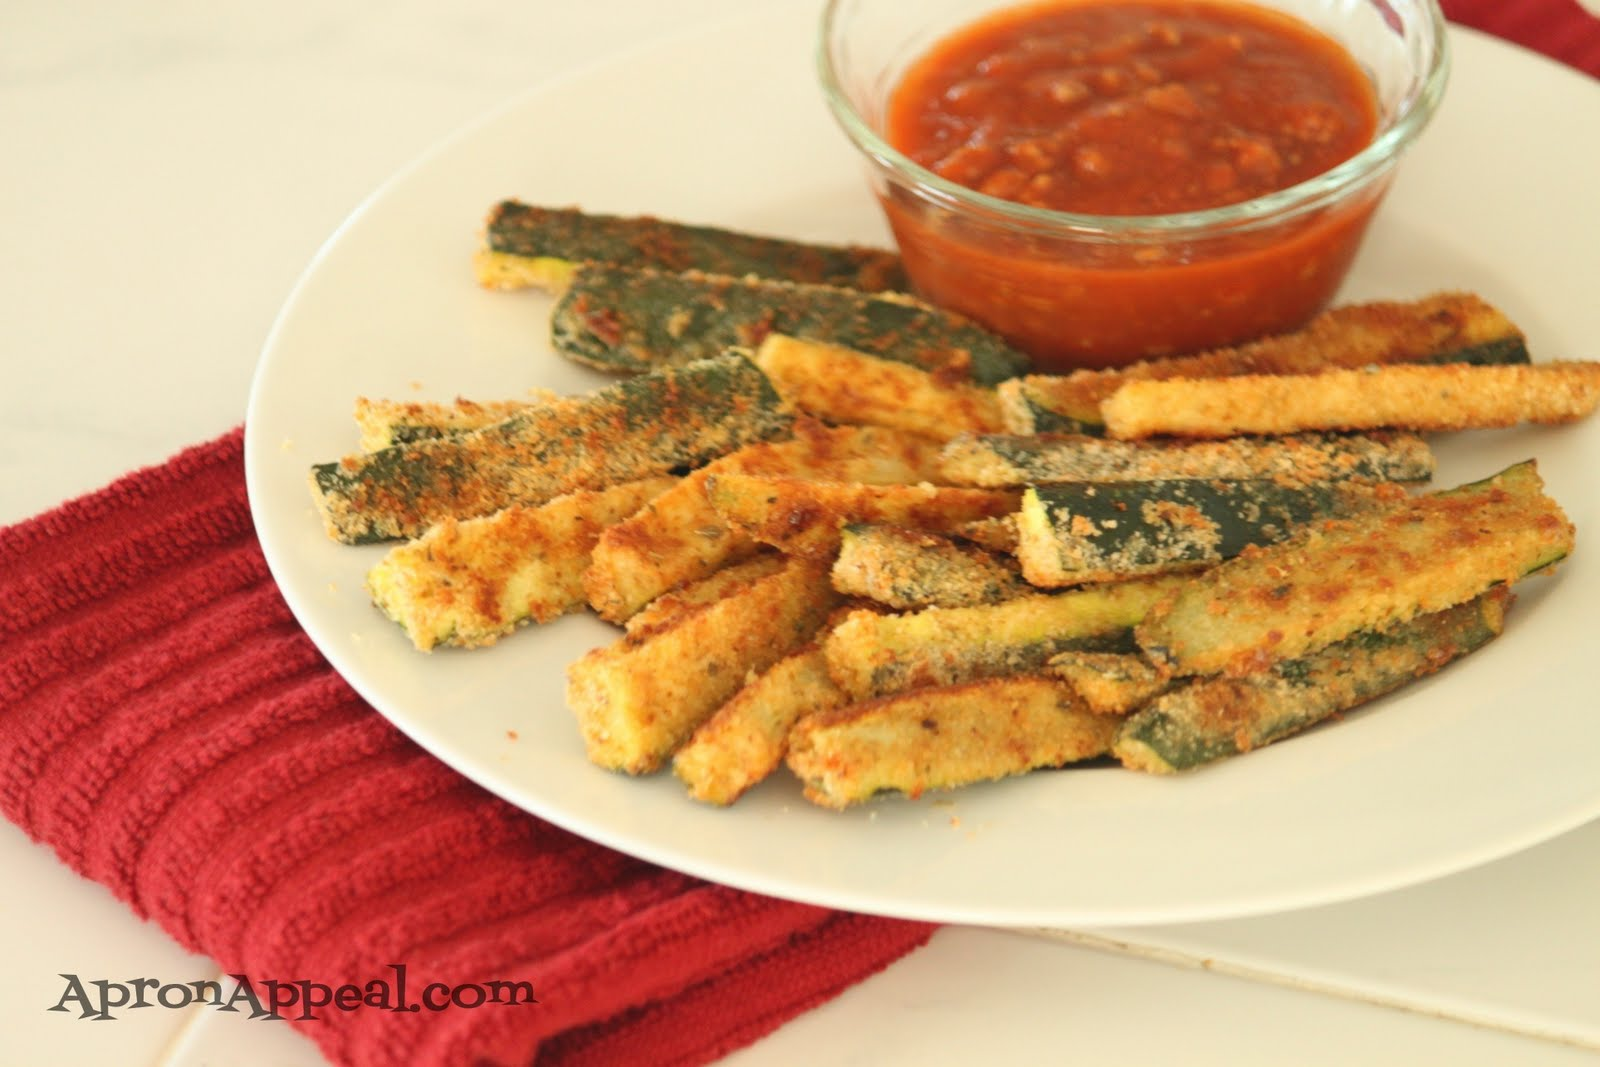 Apron Appeal: Baked Parmesan Zucchini Fries